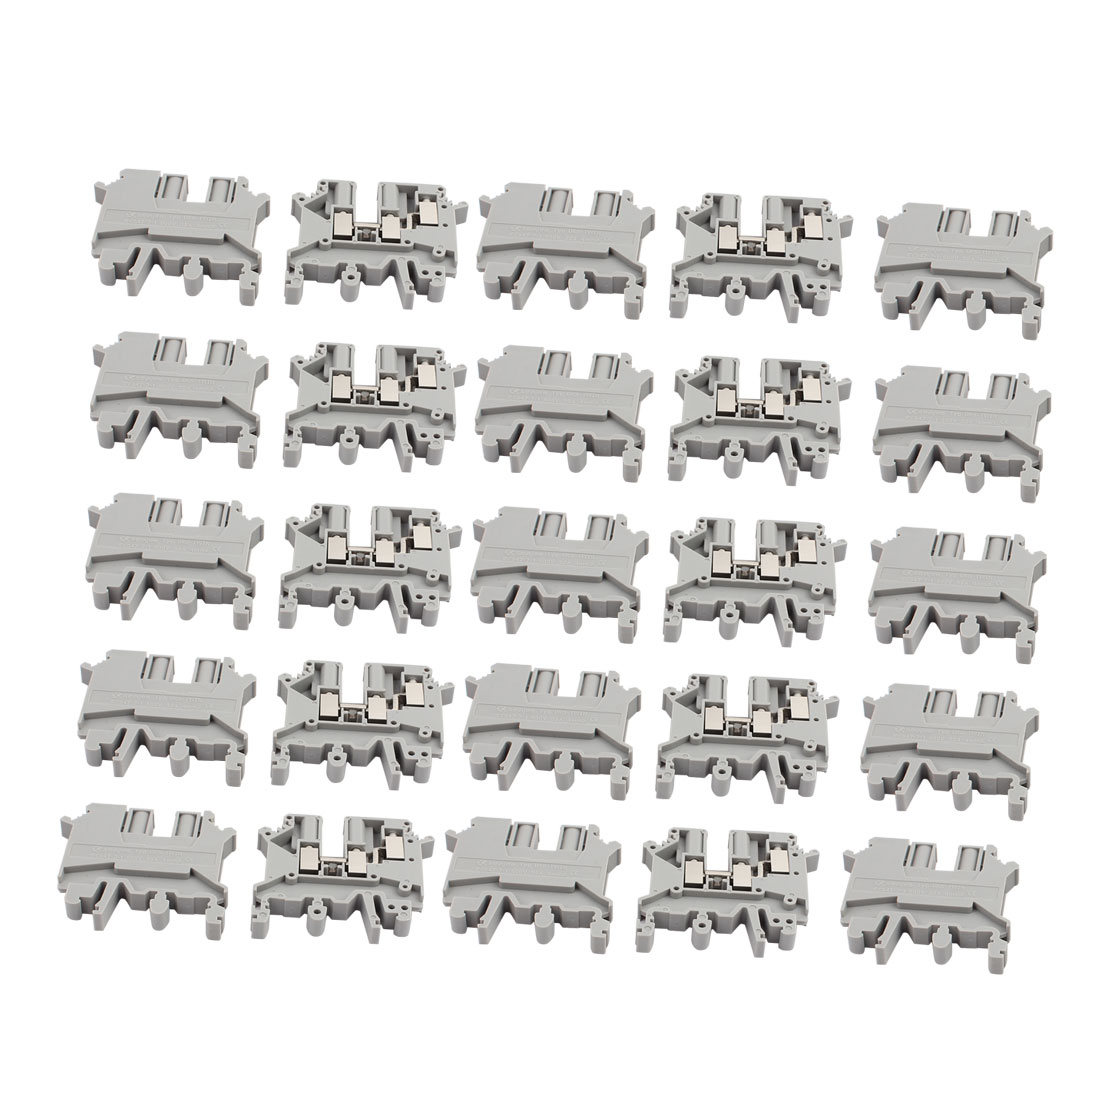 25Pcs UK-5TWIN DIN Rail Mount  One Inlet Double Outlet Terminal Block 500V 32A - image 3 of 3